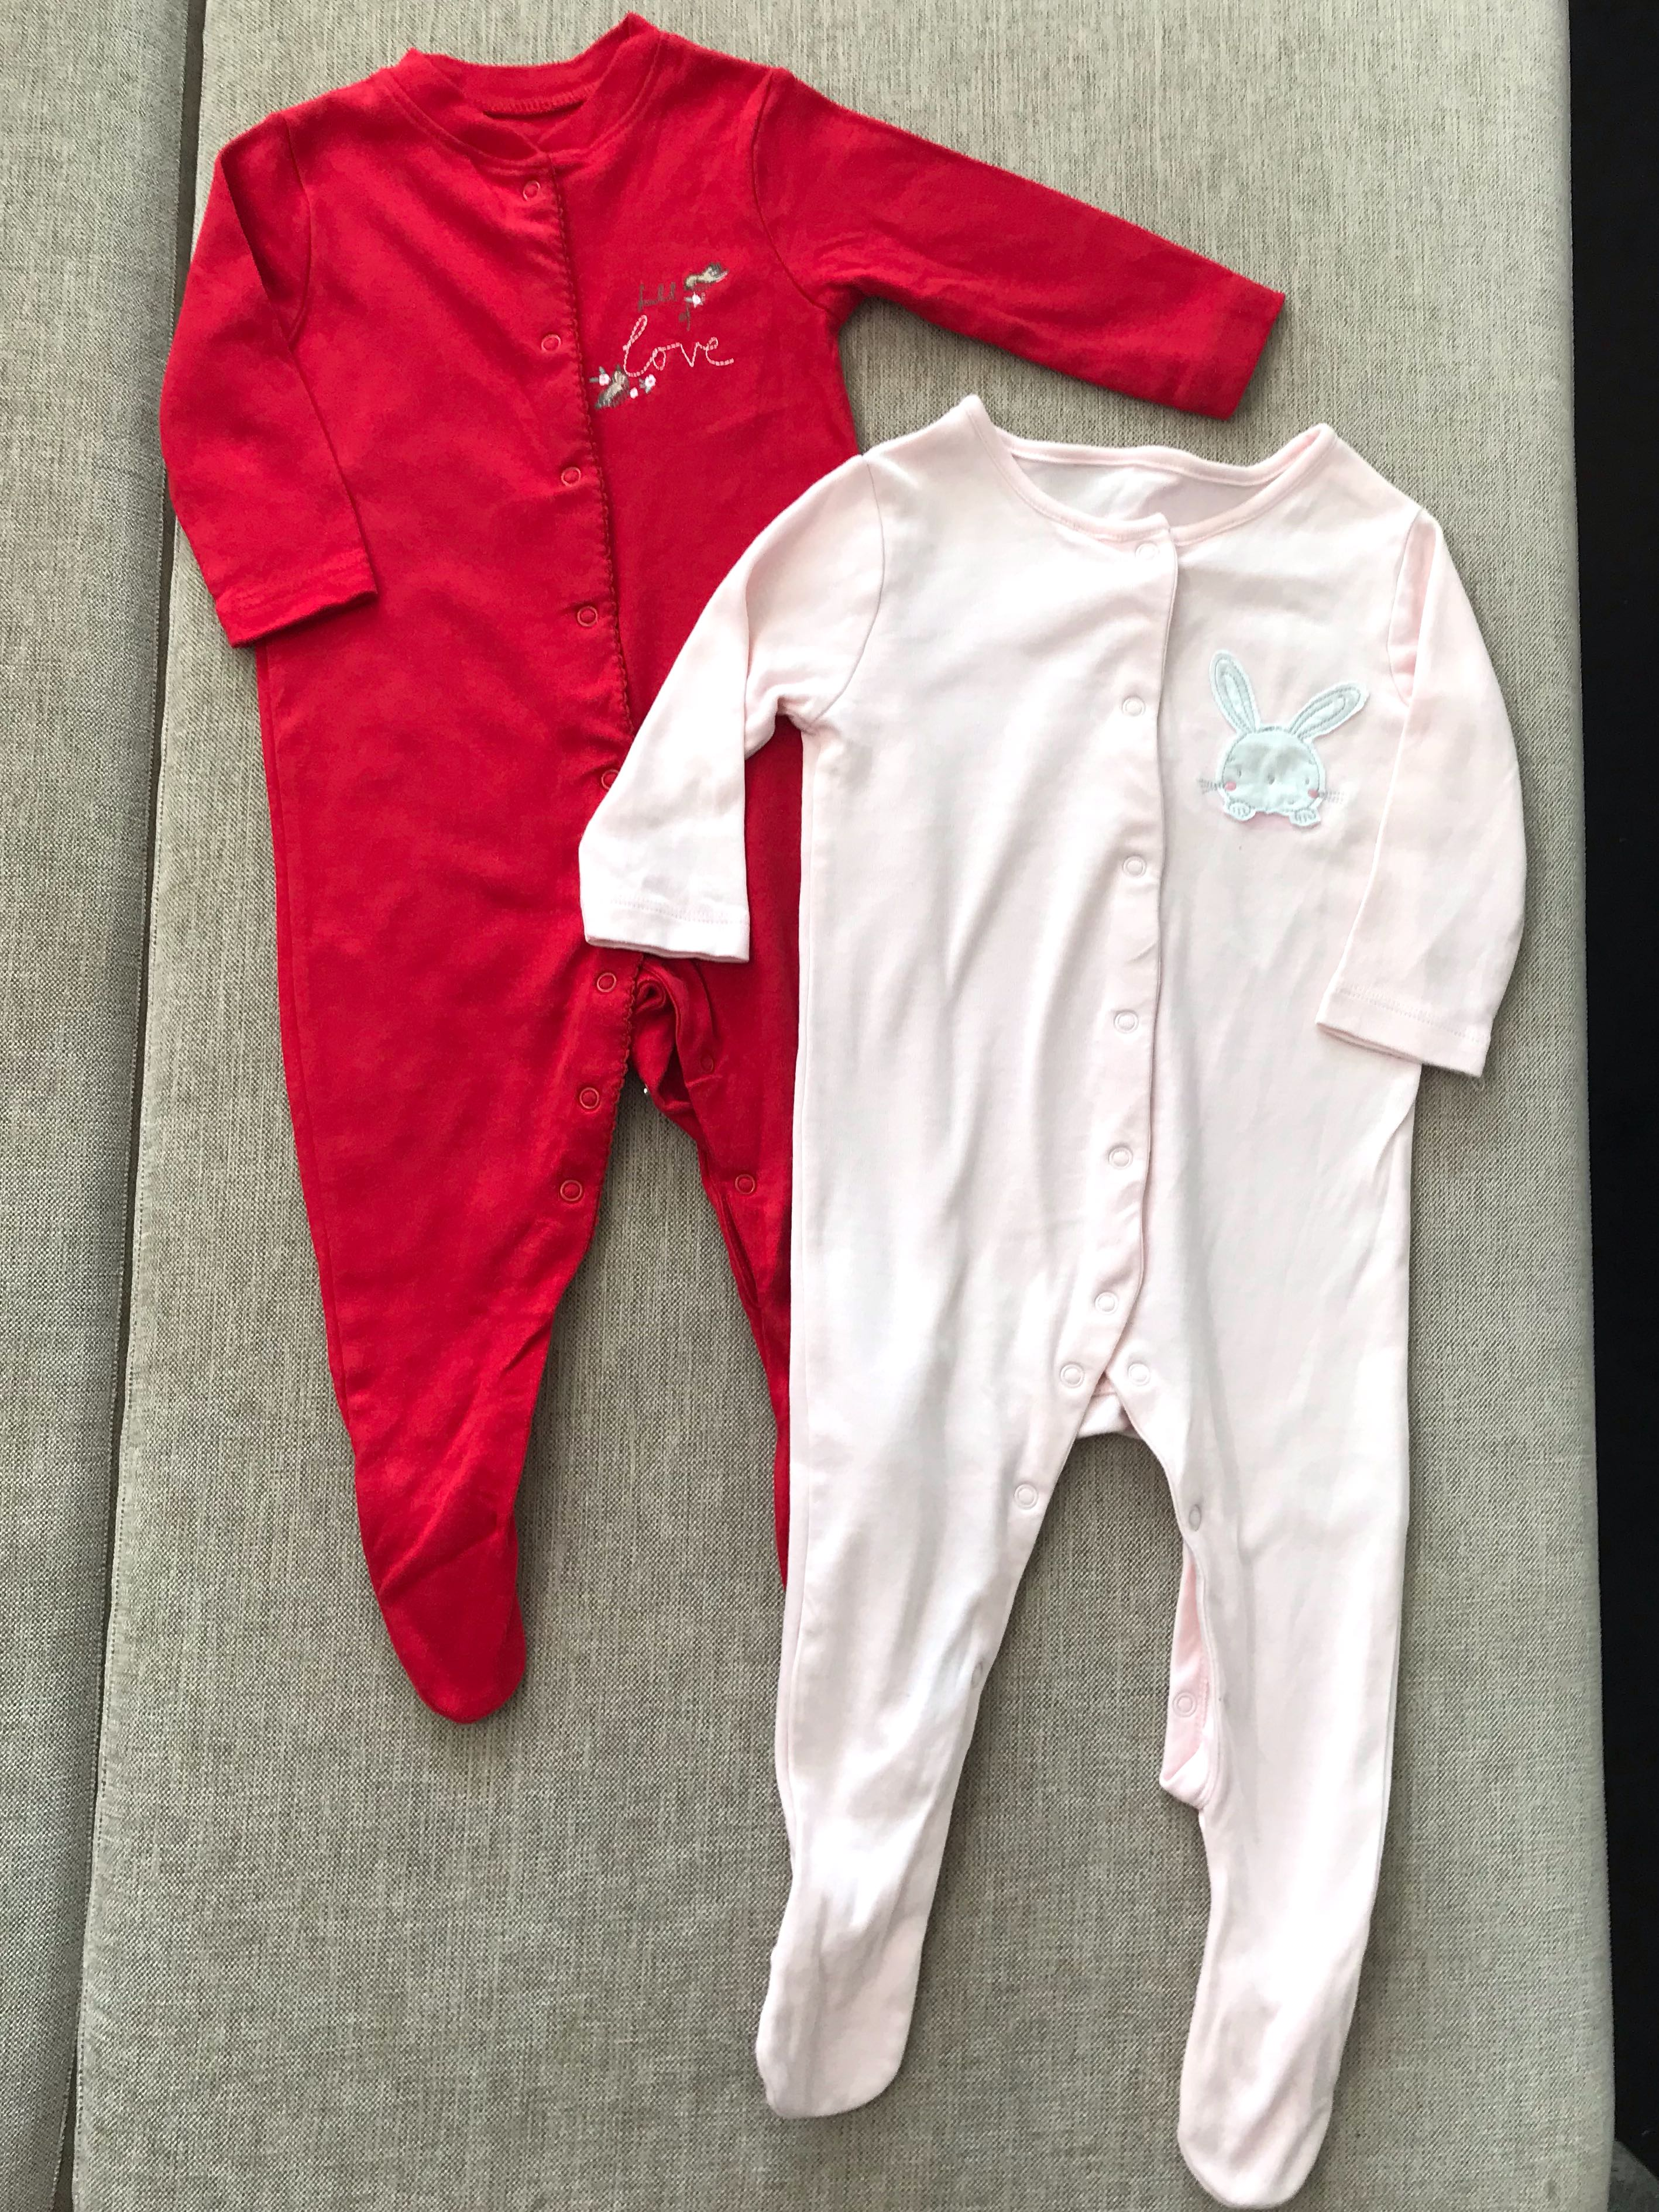 Baby & Toddler Clothing One-pieces Baby Girls Sleepsuits 6-9 Months